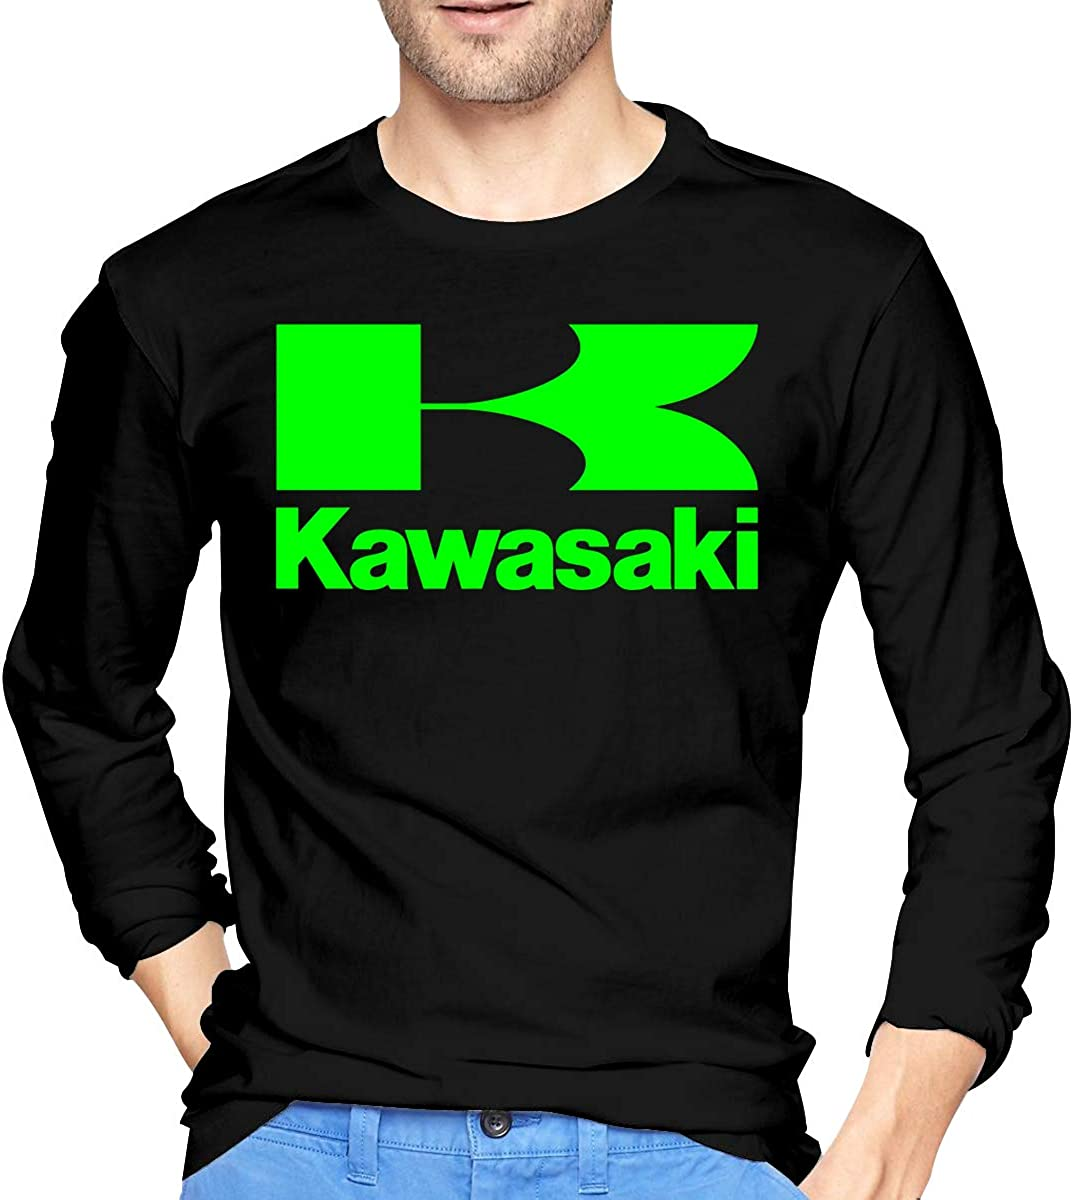 Men Kawasaki Racing Bikes JDM ATV Ninja Long Sleeve T Shirt